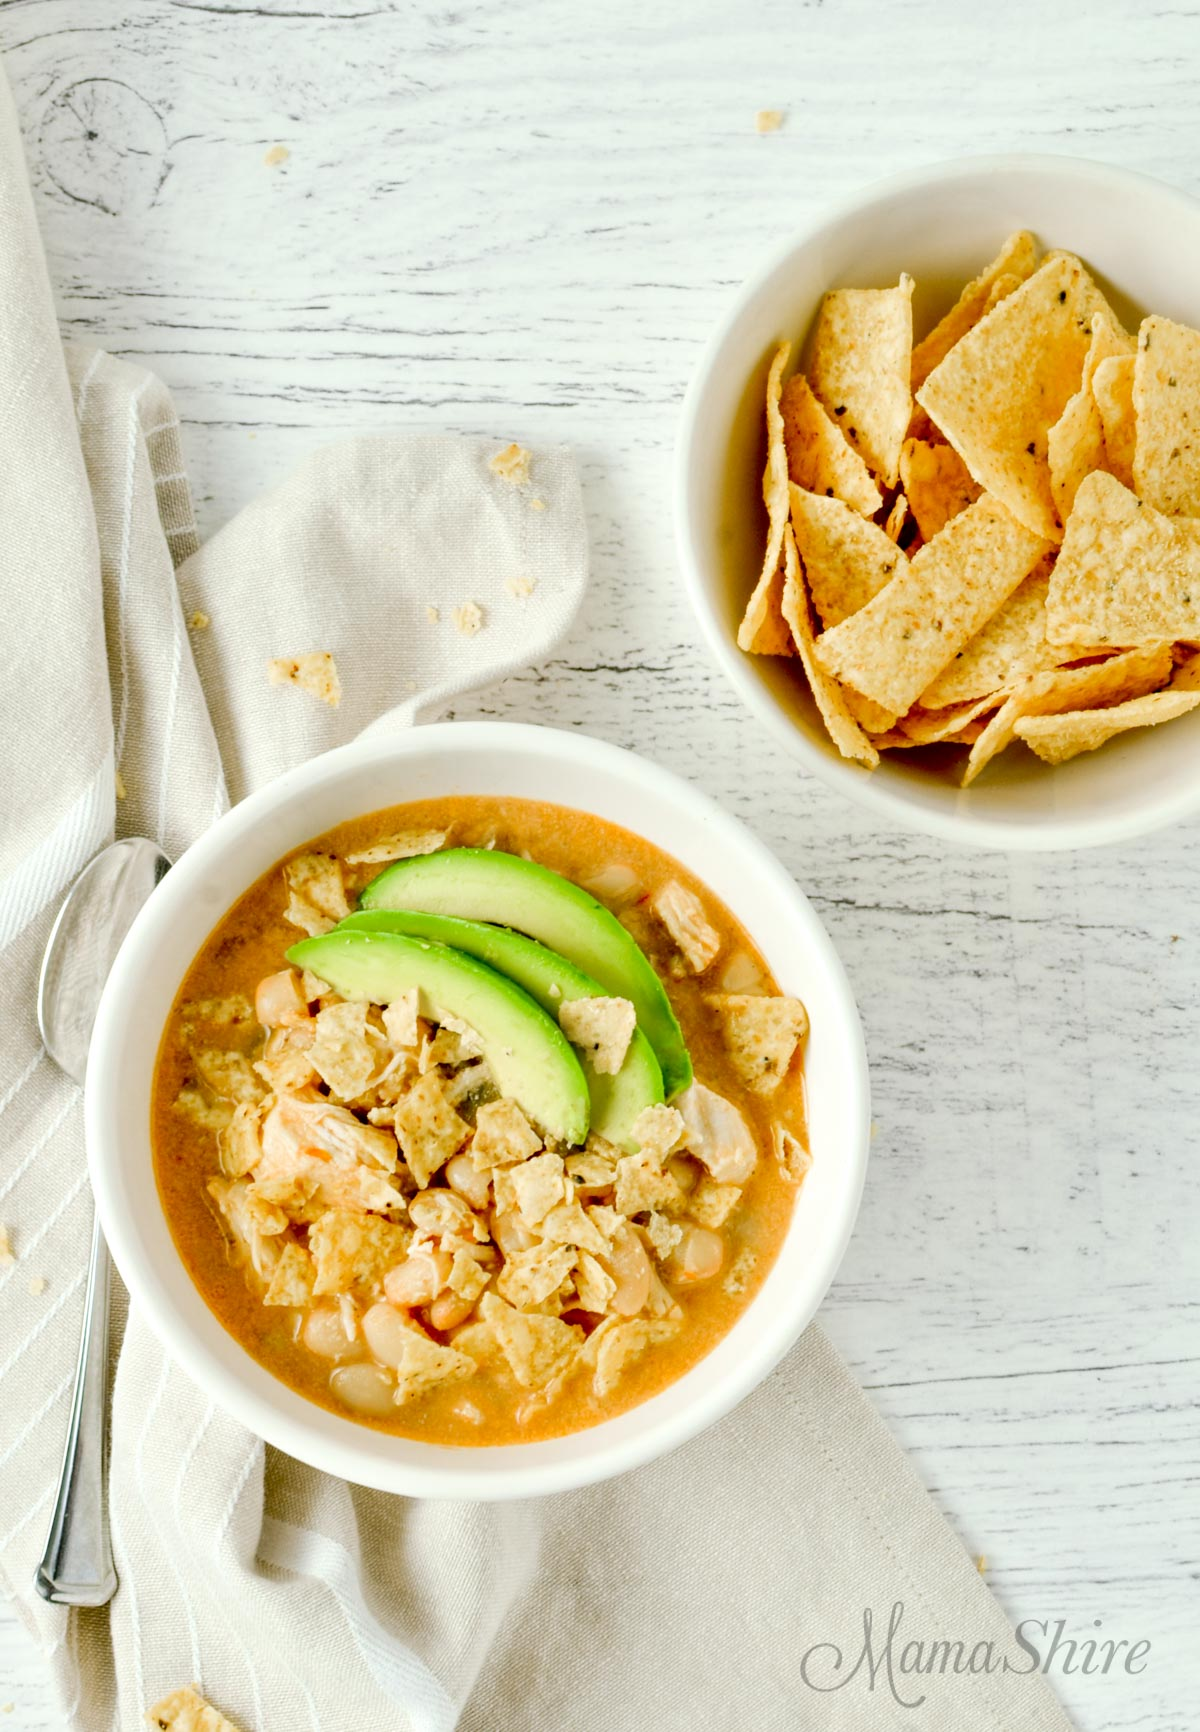 A bowl of white chicken chili made with tortilla chips on the side.